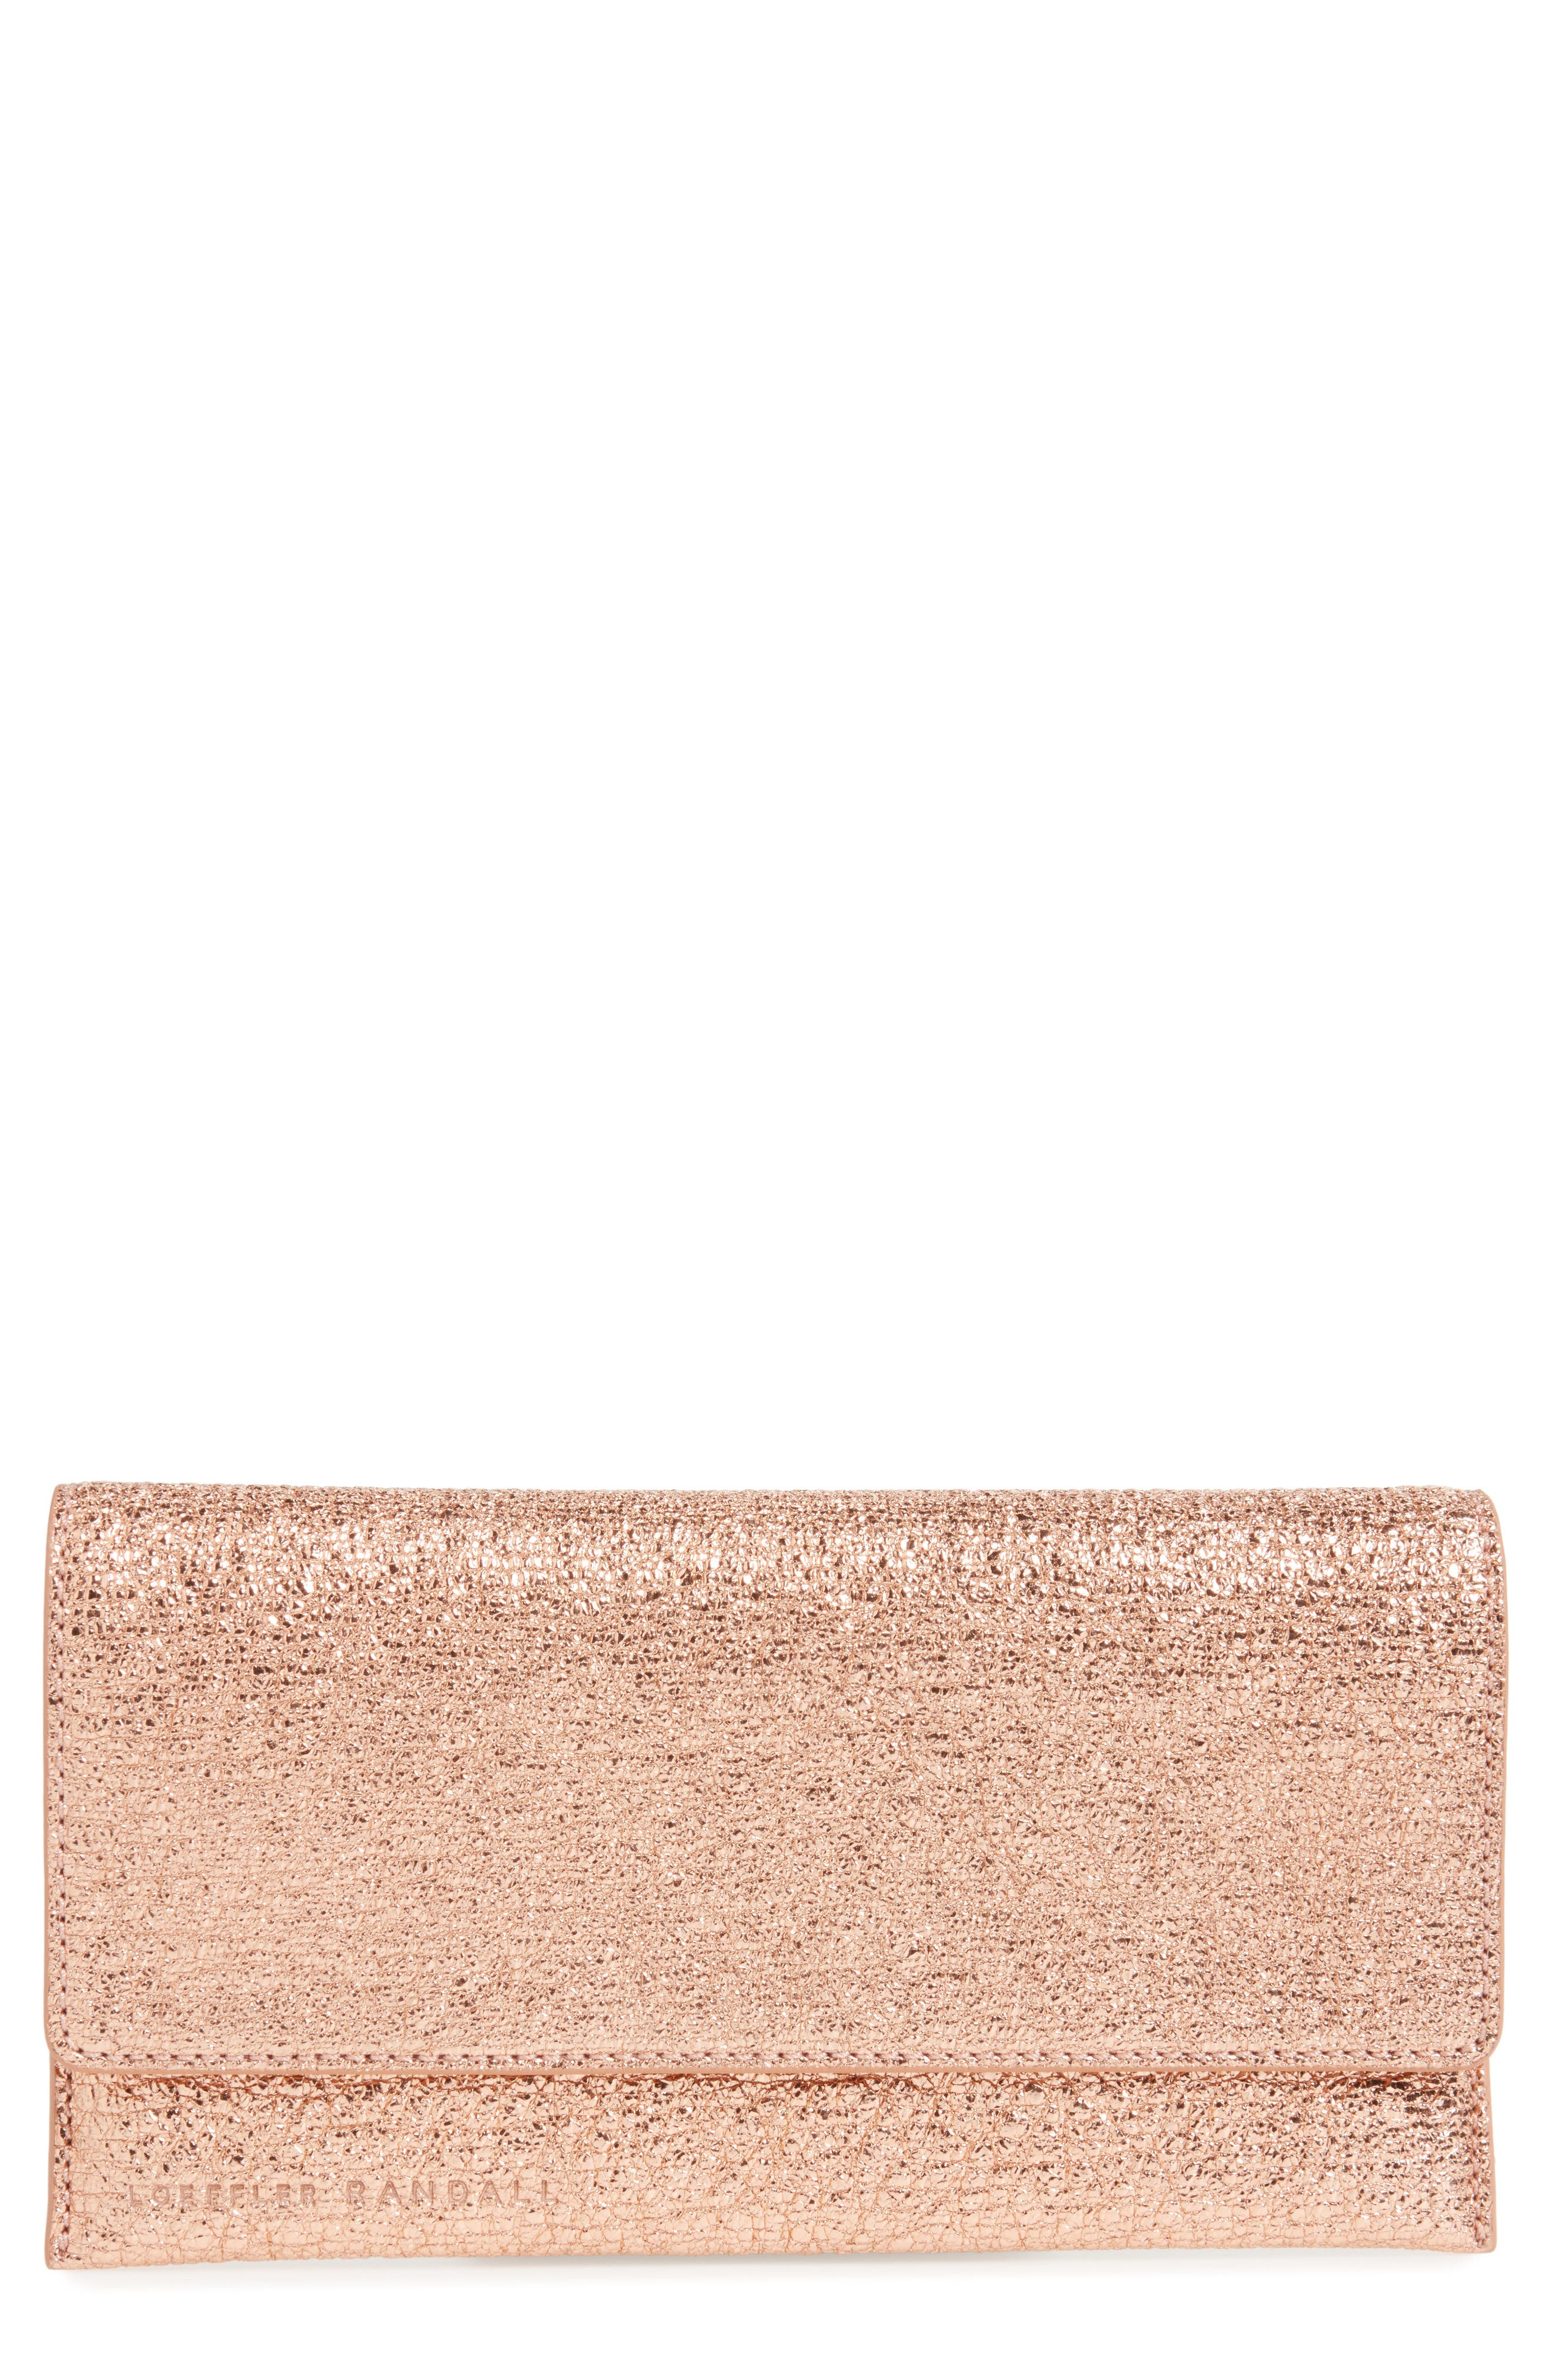 Everything Leather Wallet,                         Main,                         color, 711